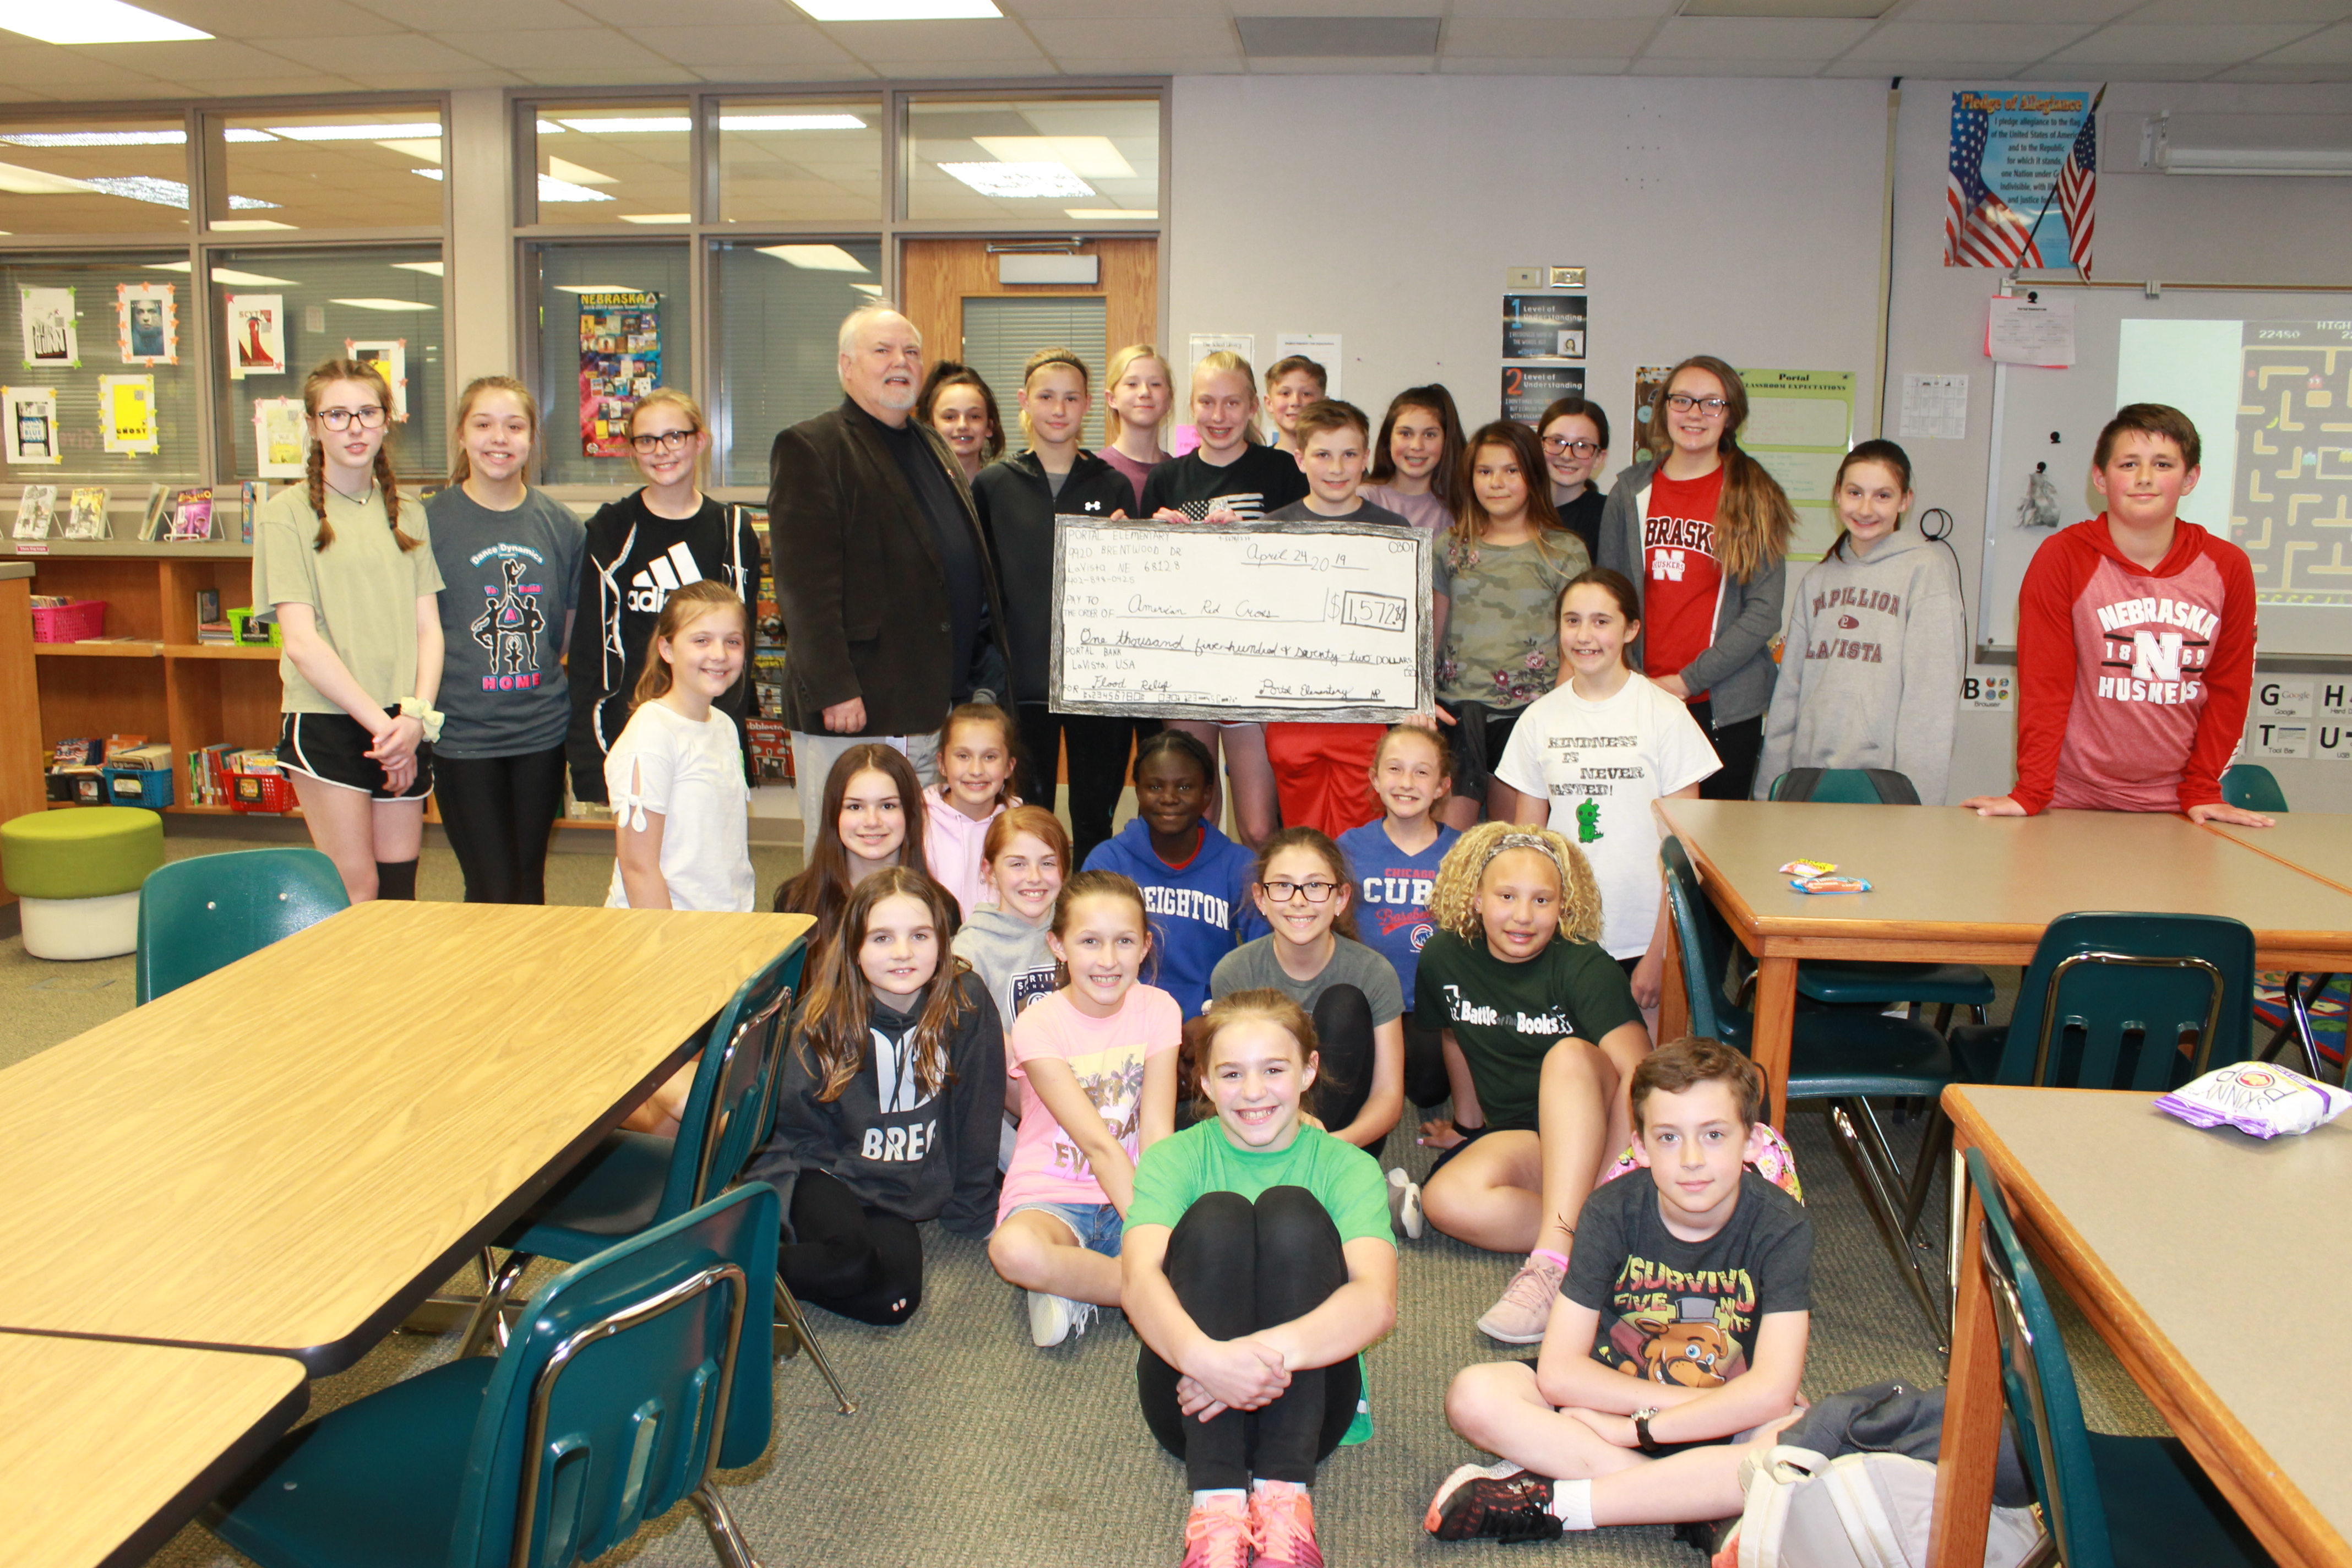 Portal Elementary donates an additional $1,572 to Red Cross through hat fundraiser